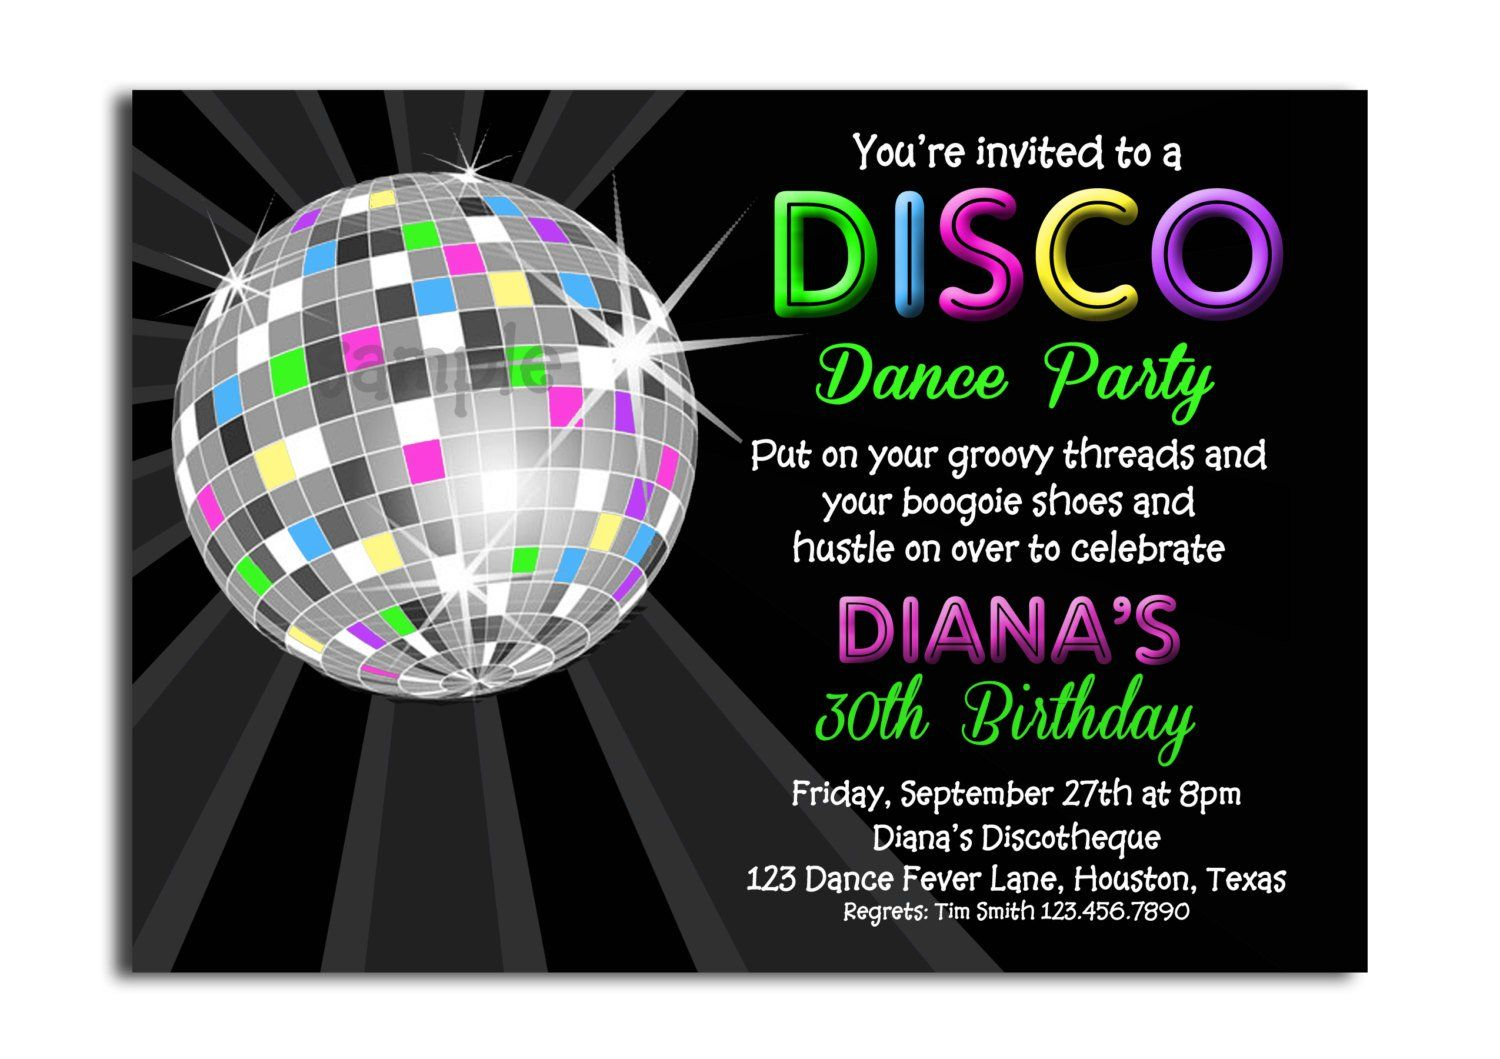 Disco Party Invitations Disco Pinterest Disco Party Party And